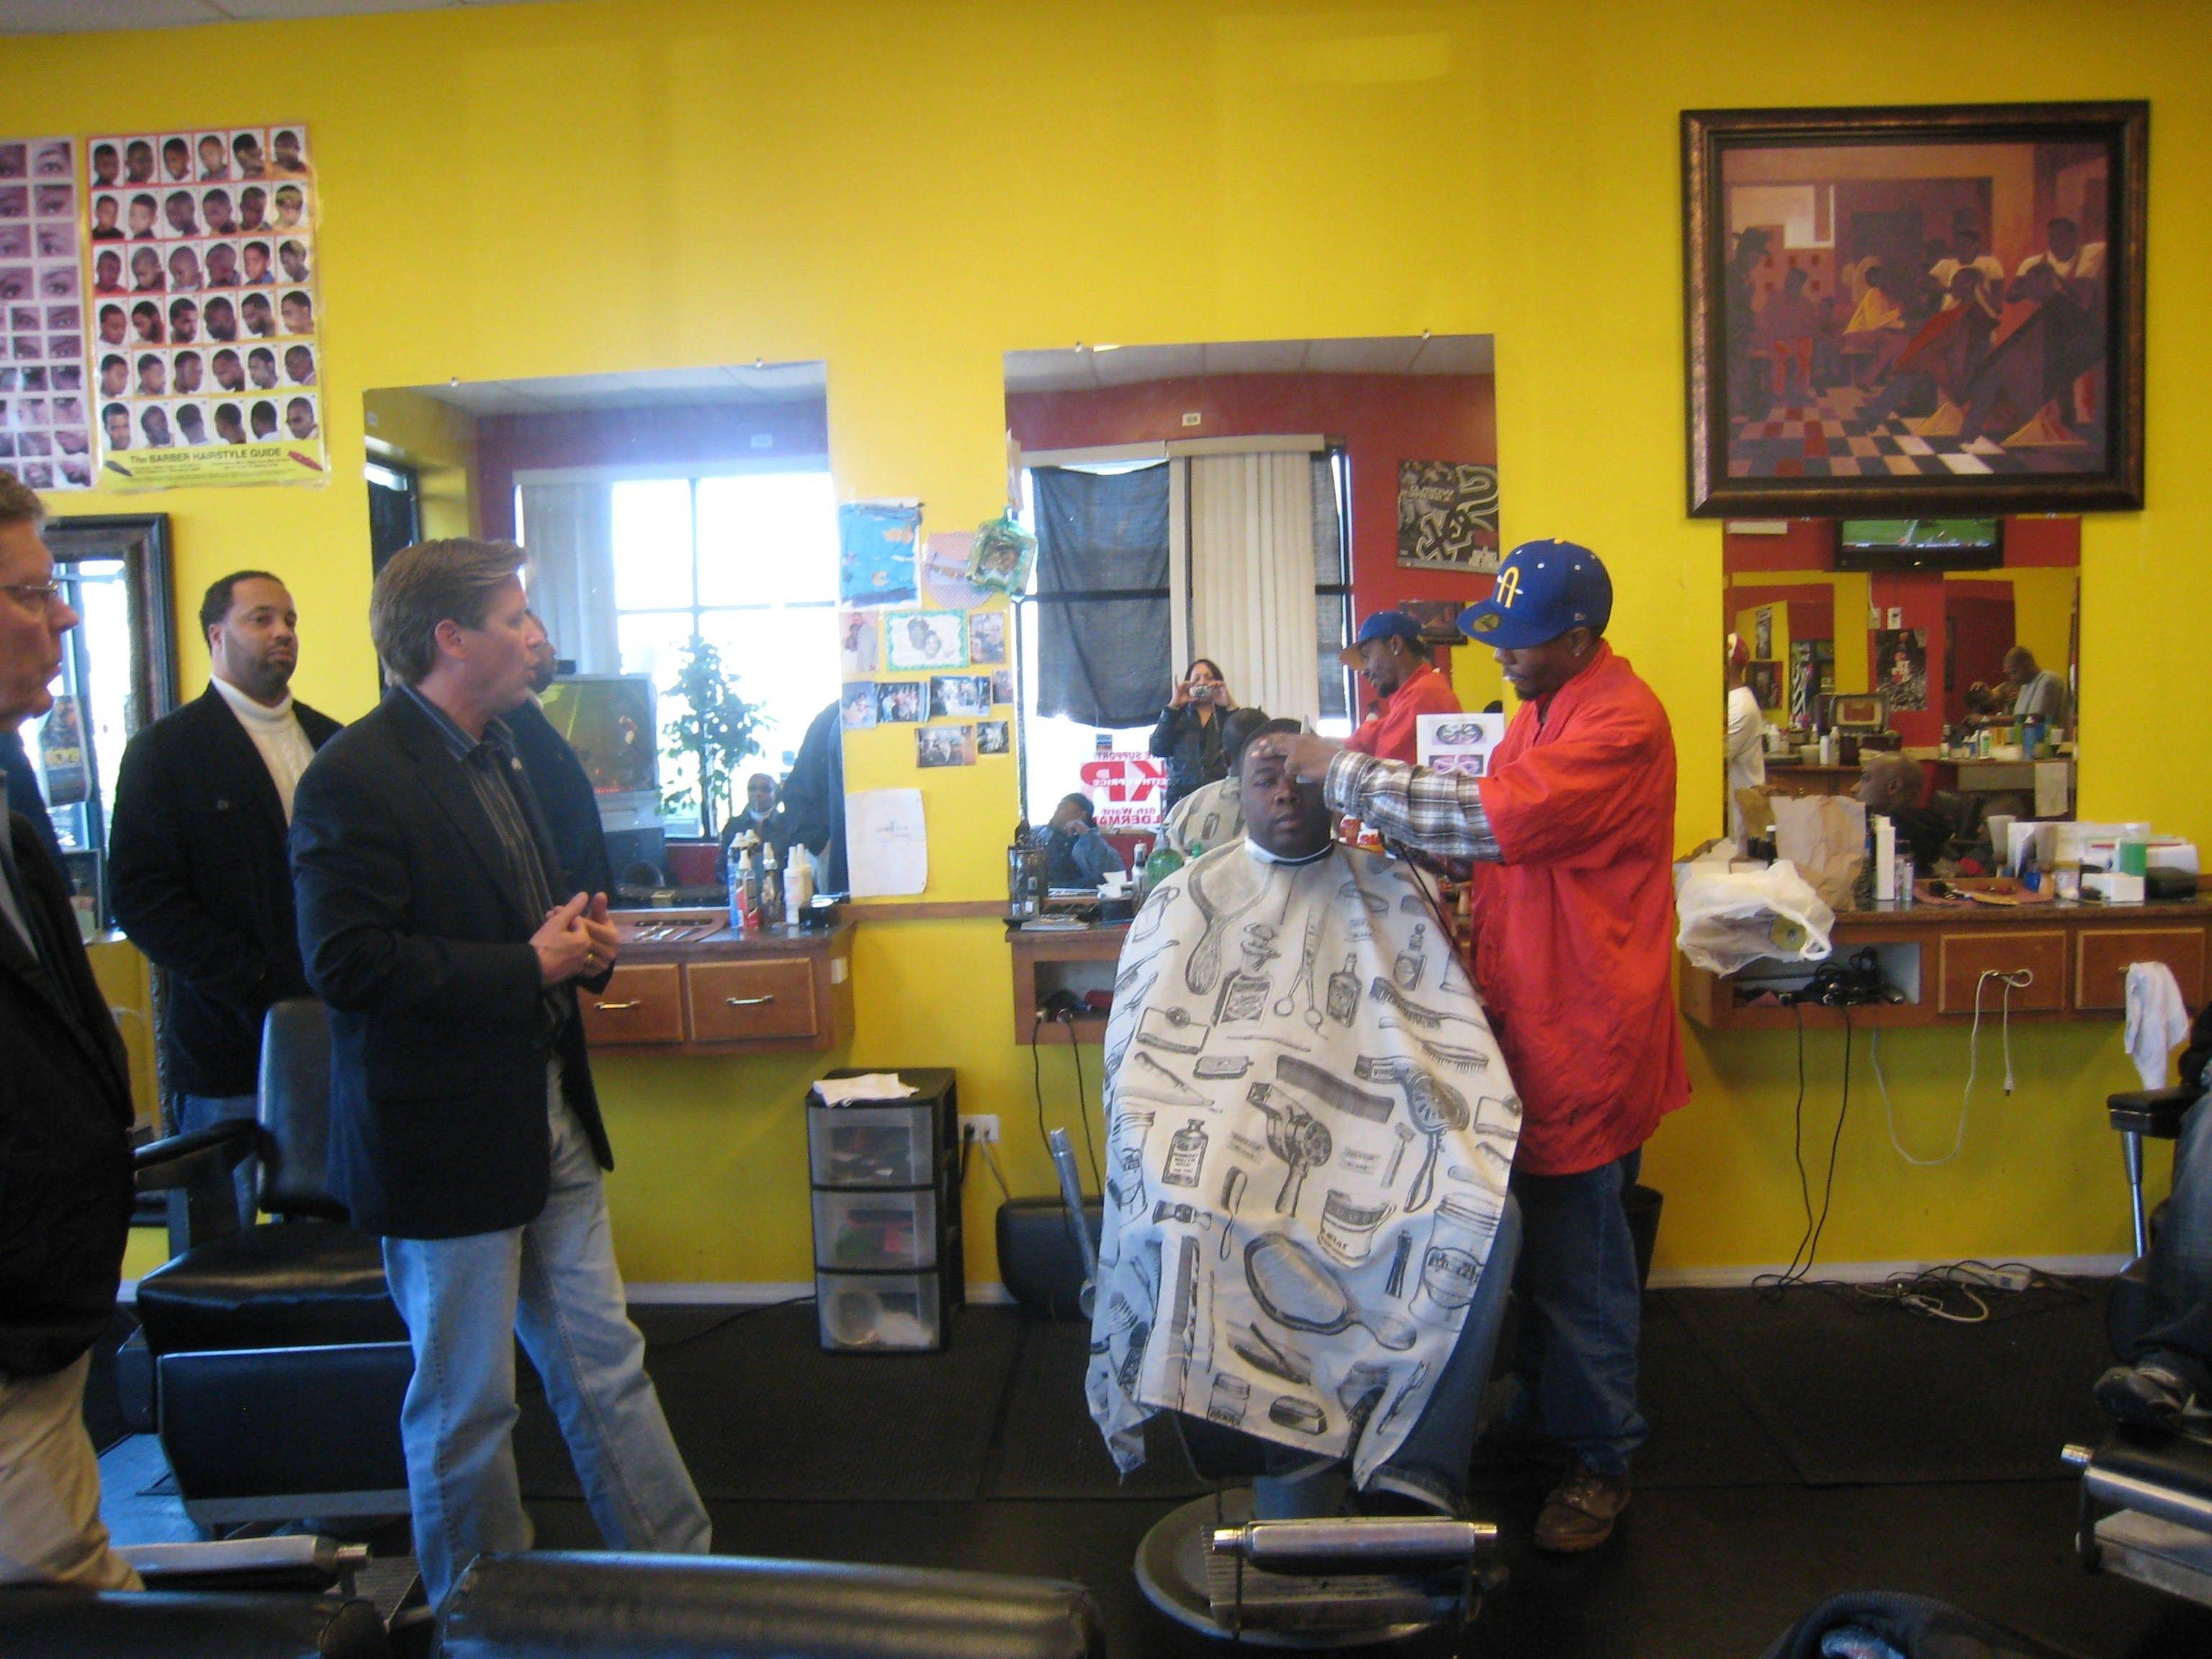 State Sen. Dan Duffy, front left, who grew up on the South side of Chicago but now represents the Barrington area, recently attended a Young Government barbershop tour in Chicago, which aims to link politicians and black voters. Jeffery Coleman, one of the group's organizers, calls barbershops the center of many black neighborhoods, where the real conversation starts.